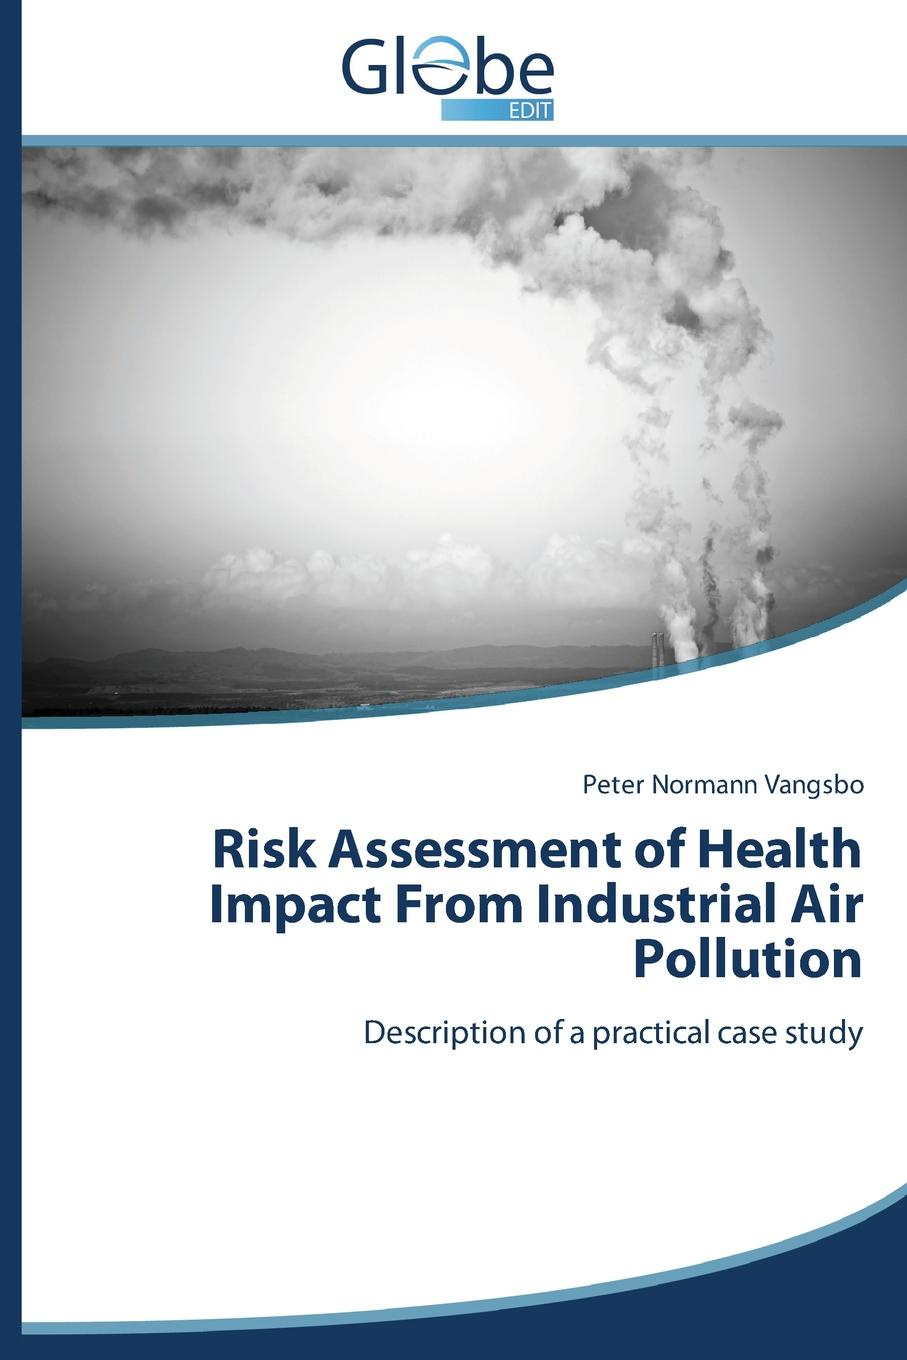 Vangsbo Peter Normann Risk Assessment of Health Impact From Industrial Air Pollution